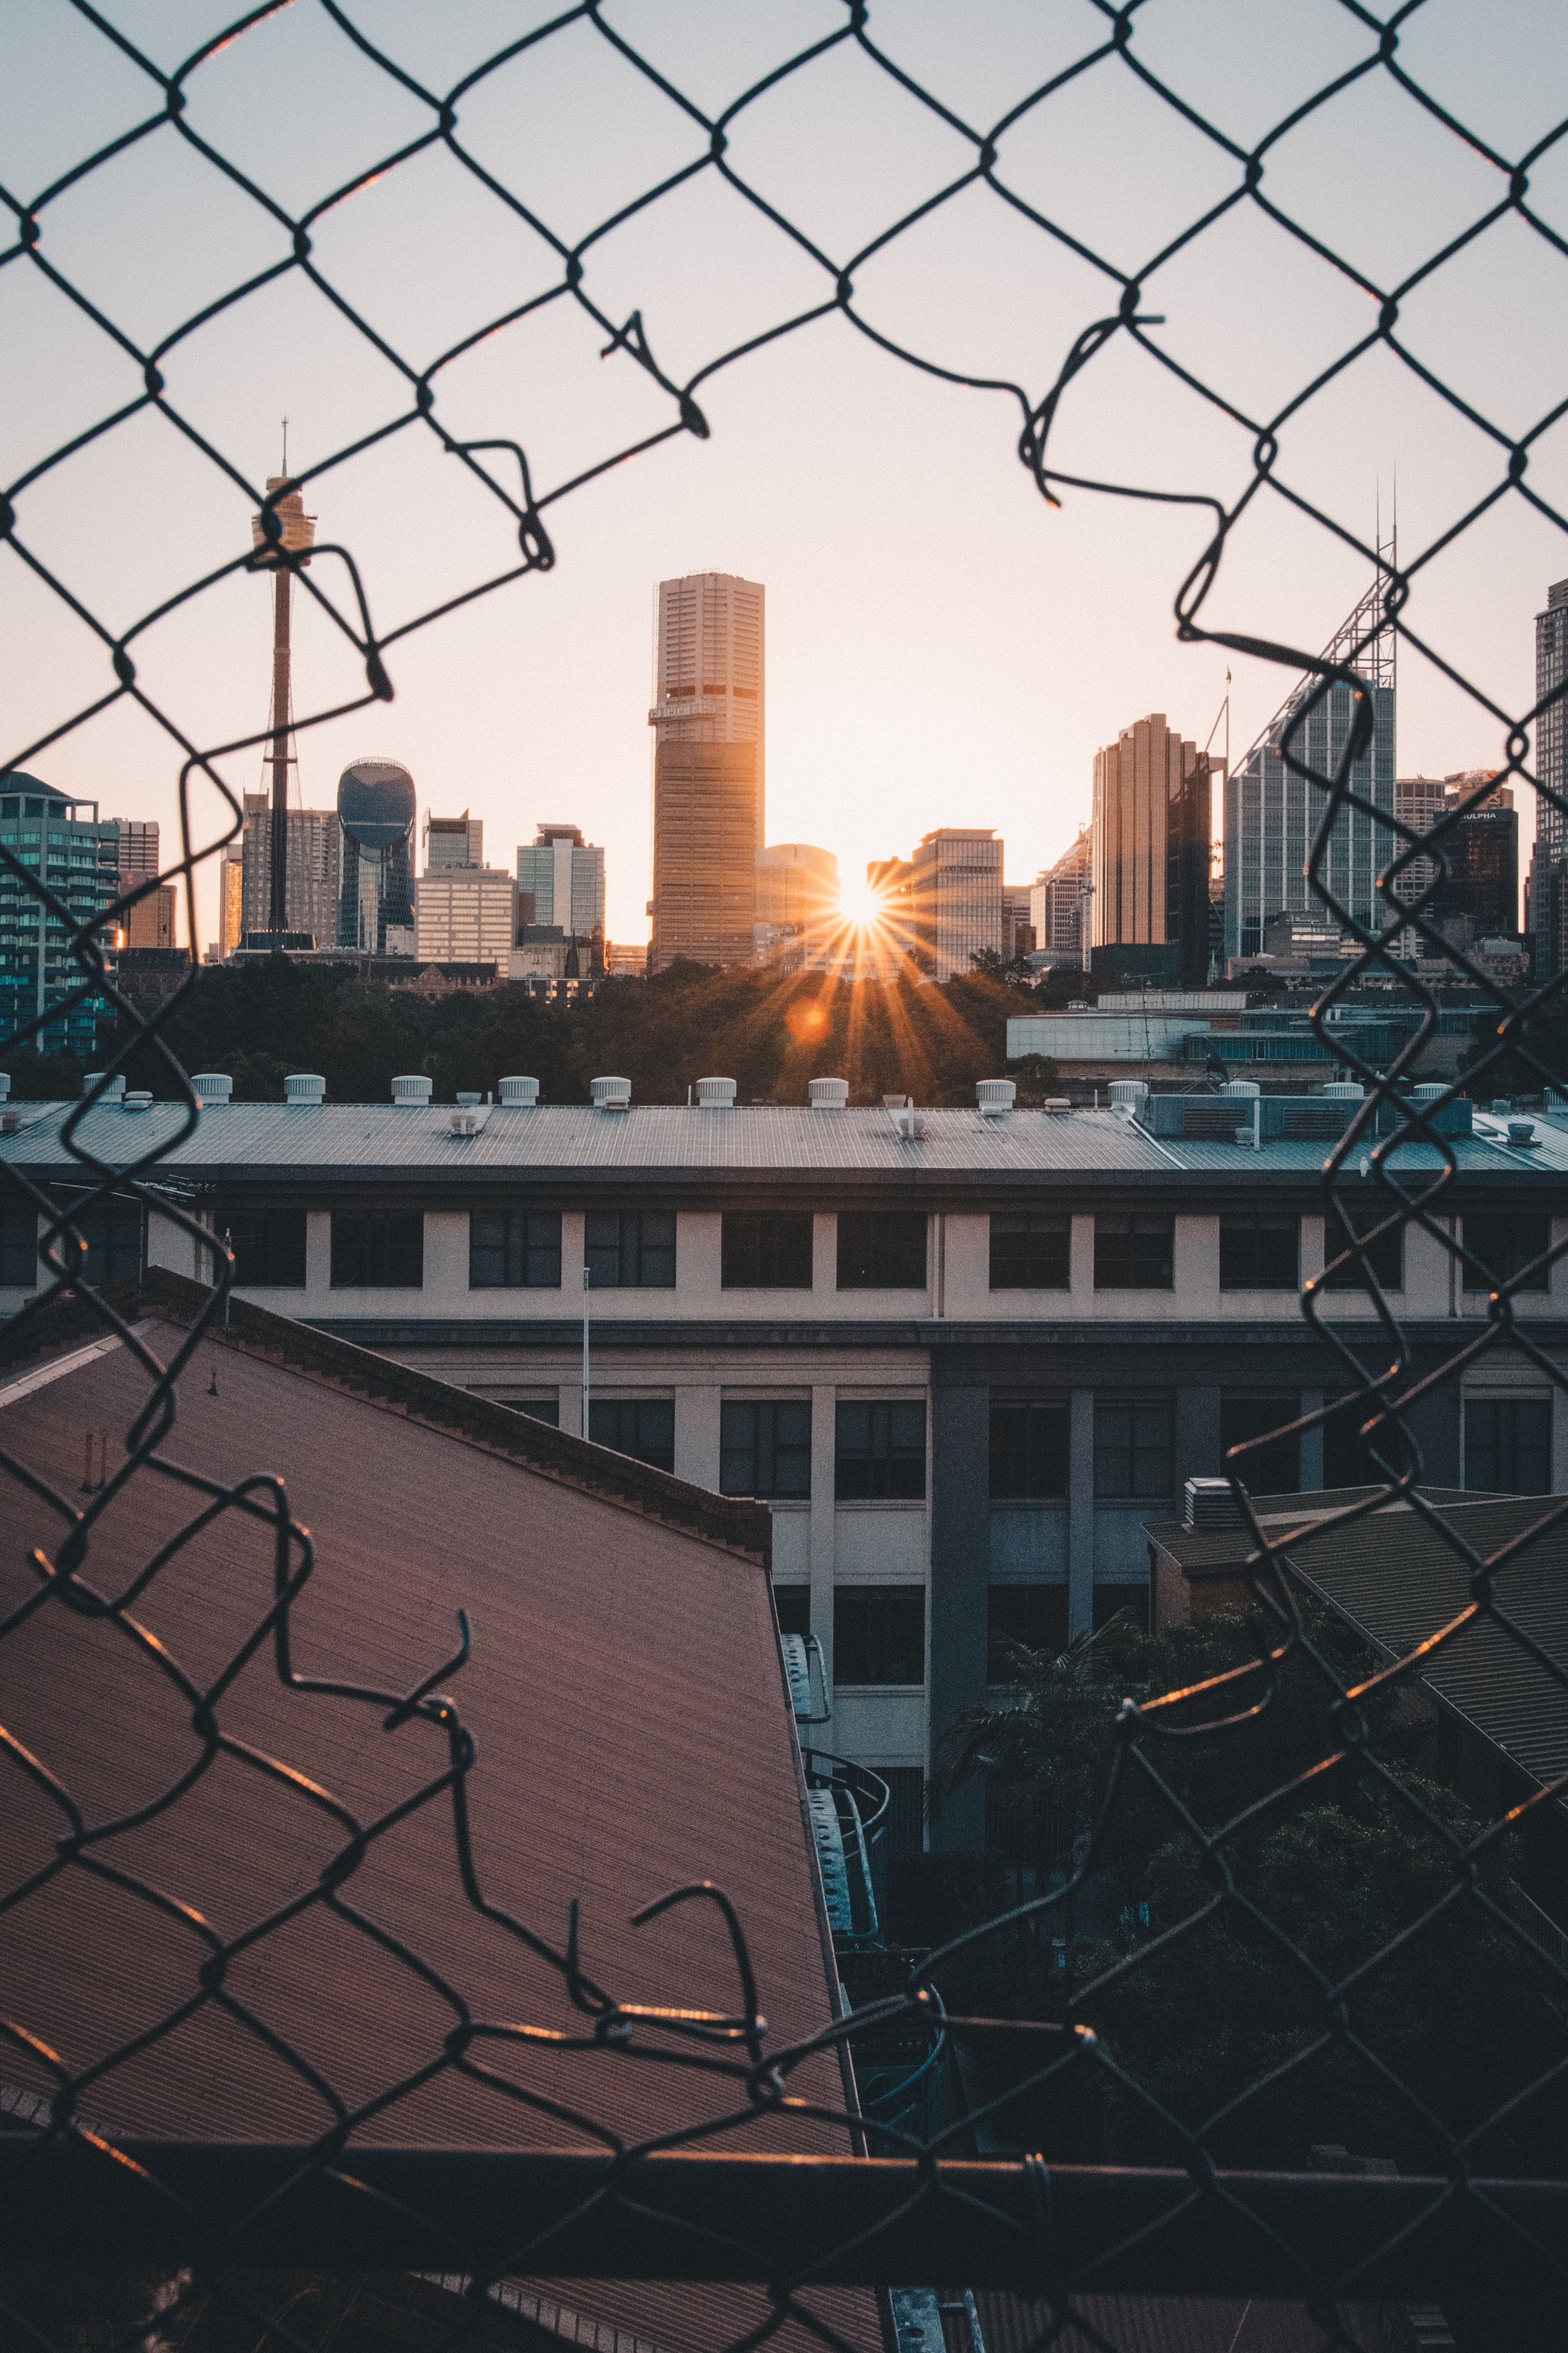 viewing sunset through cyclone fence